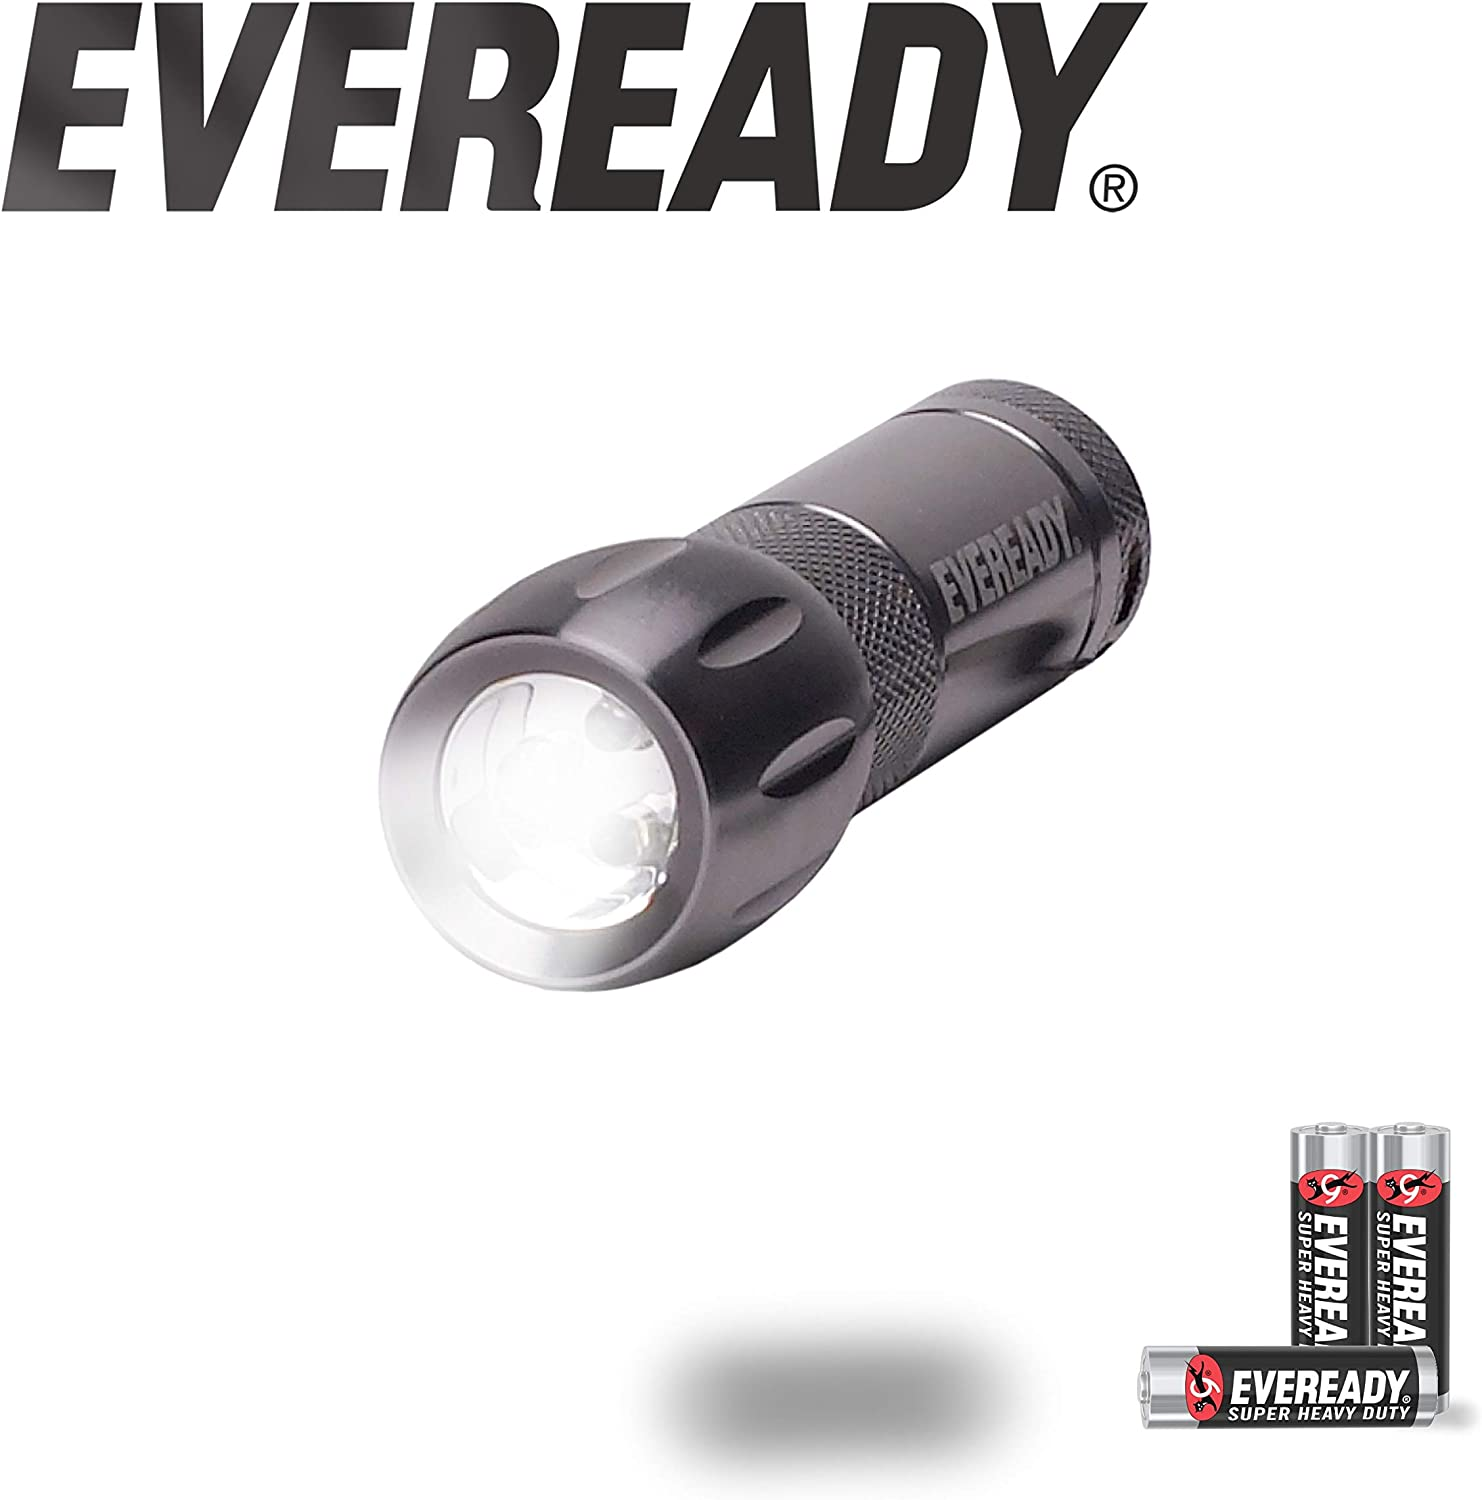 Eveready Compact LED Metal Flashlight Water Resistant 21 Lumens Includes 3 Super Heavy Duty AAA Batteries Black